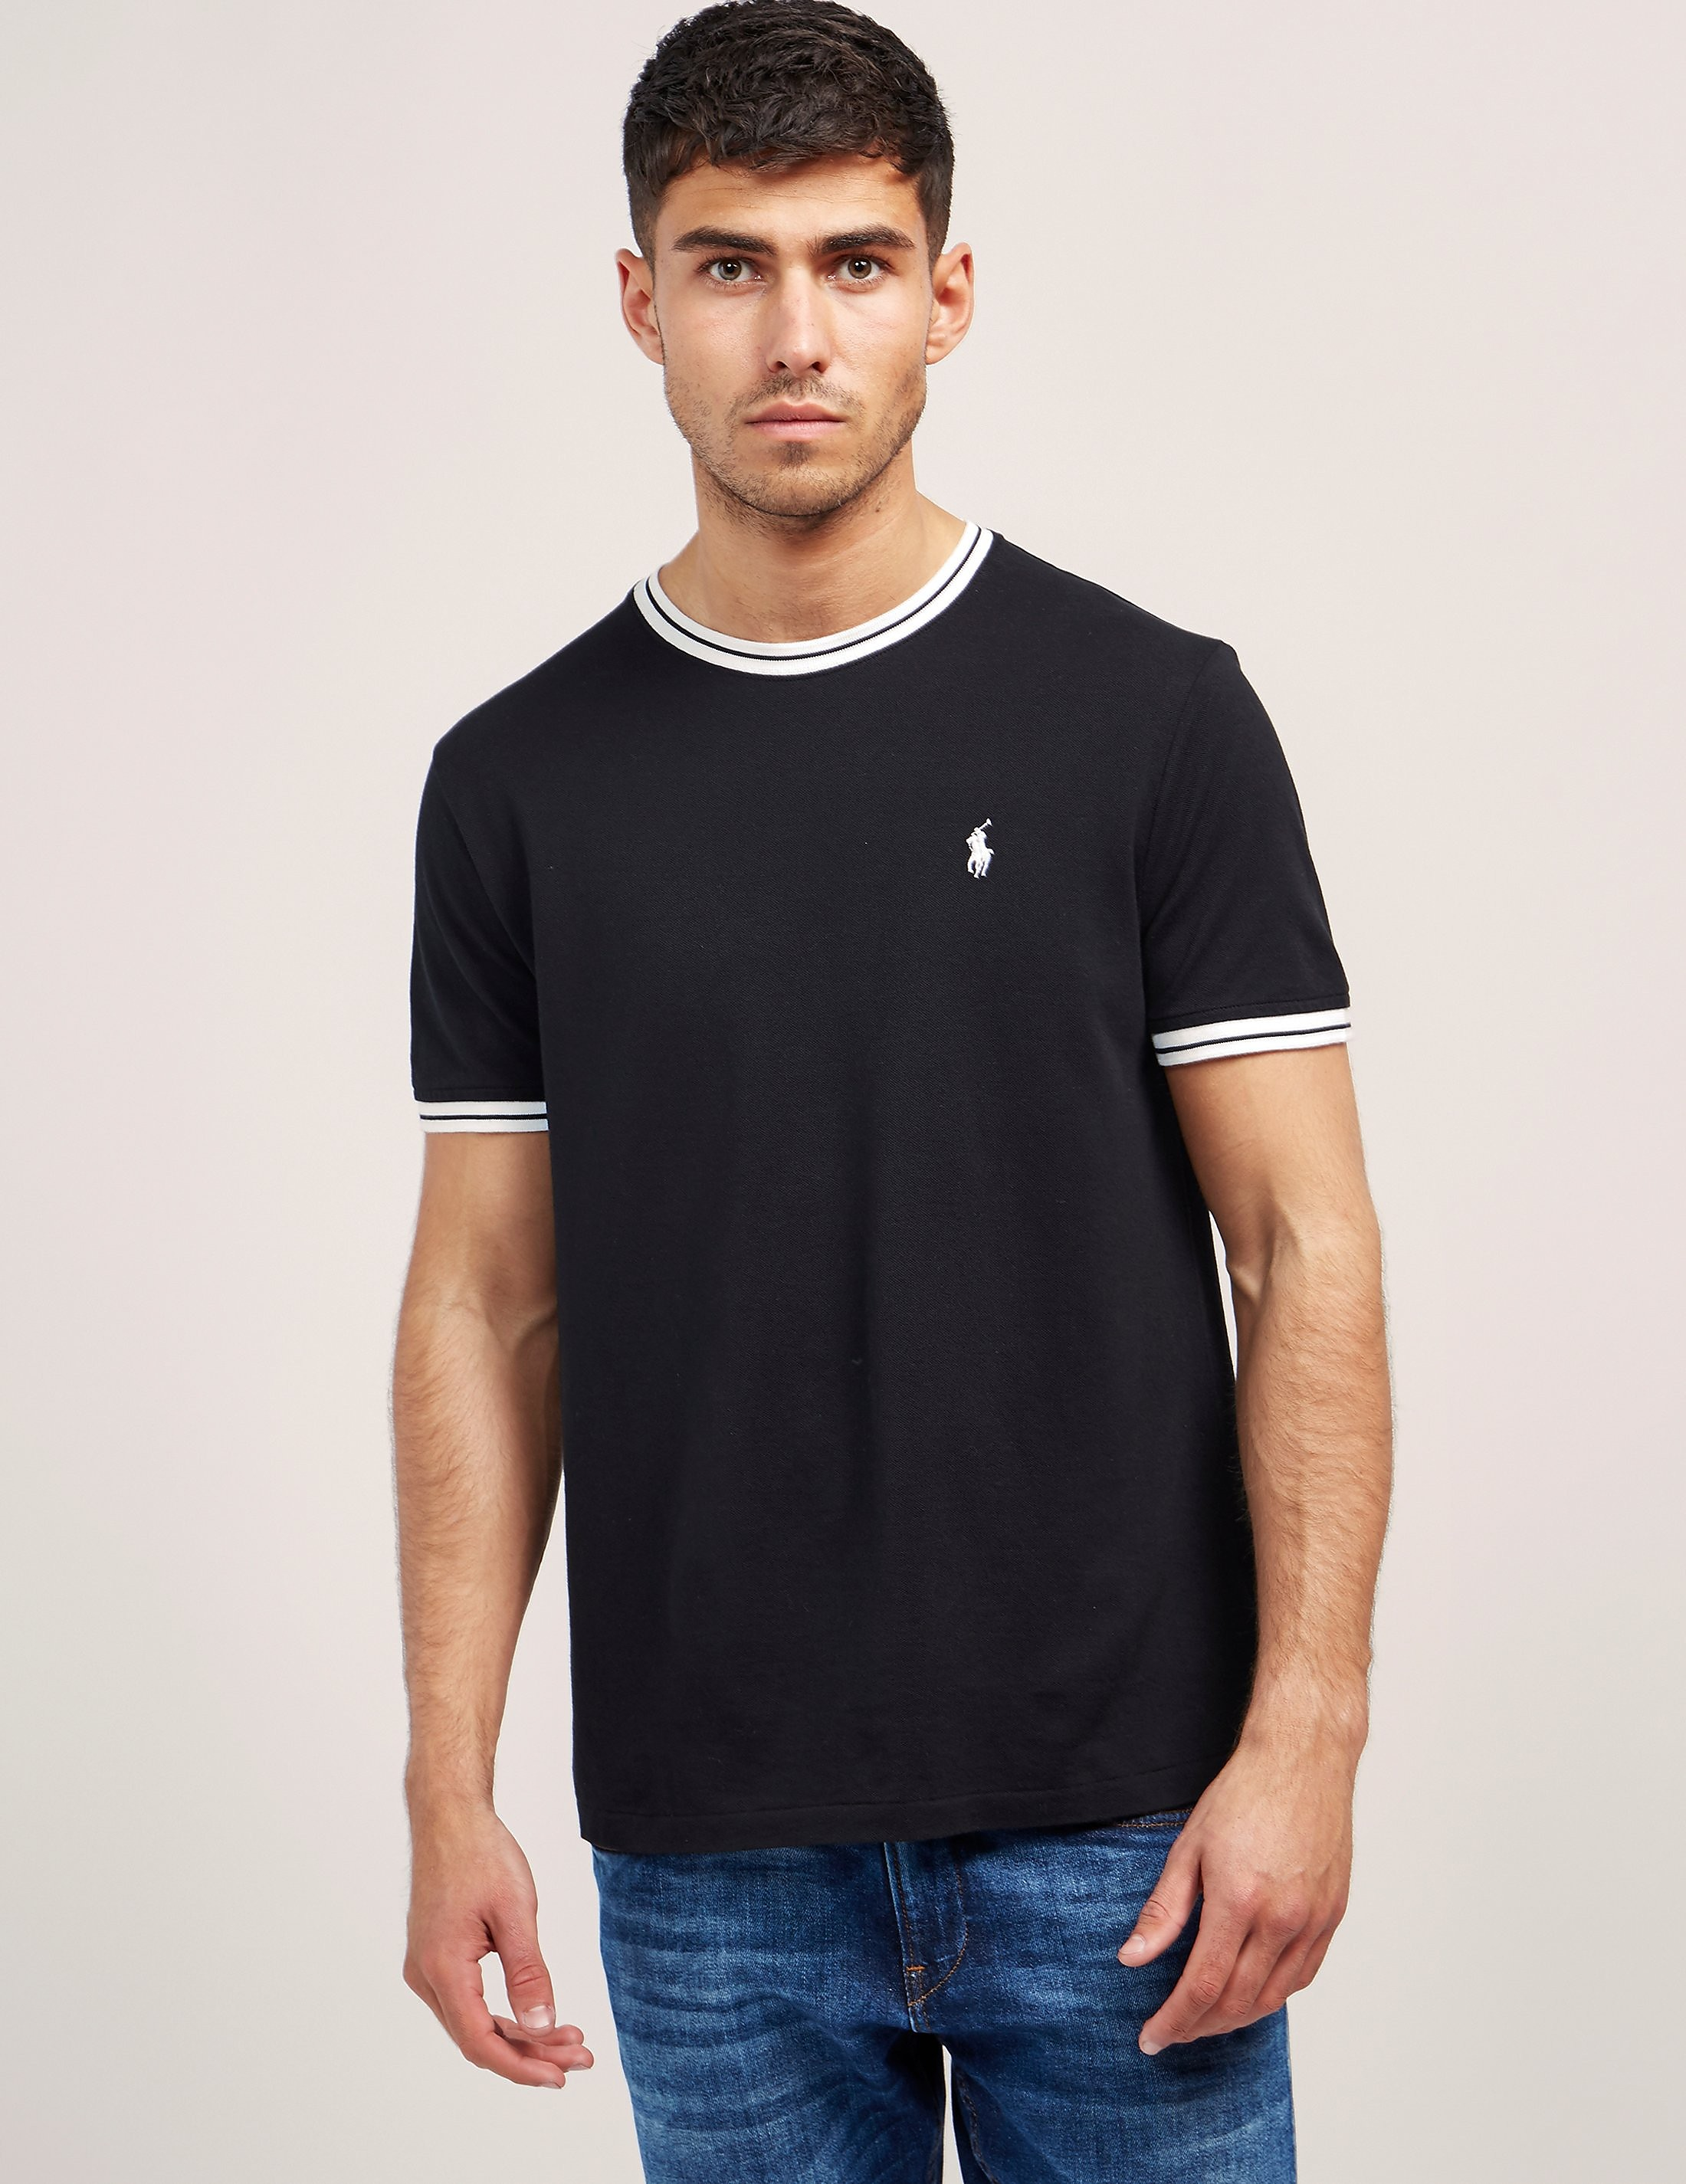 Polo Ralph Lauren Double Tipped Short Sleeve T-Shirt